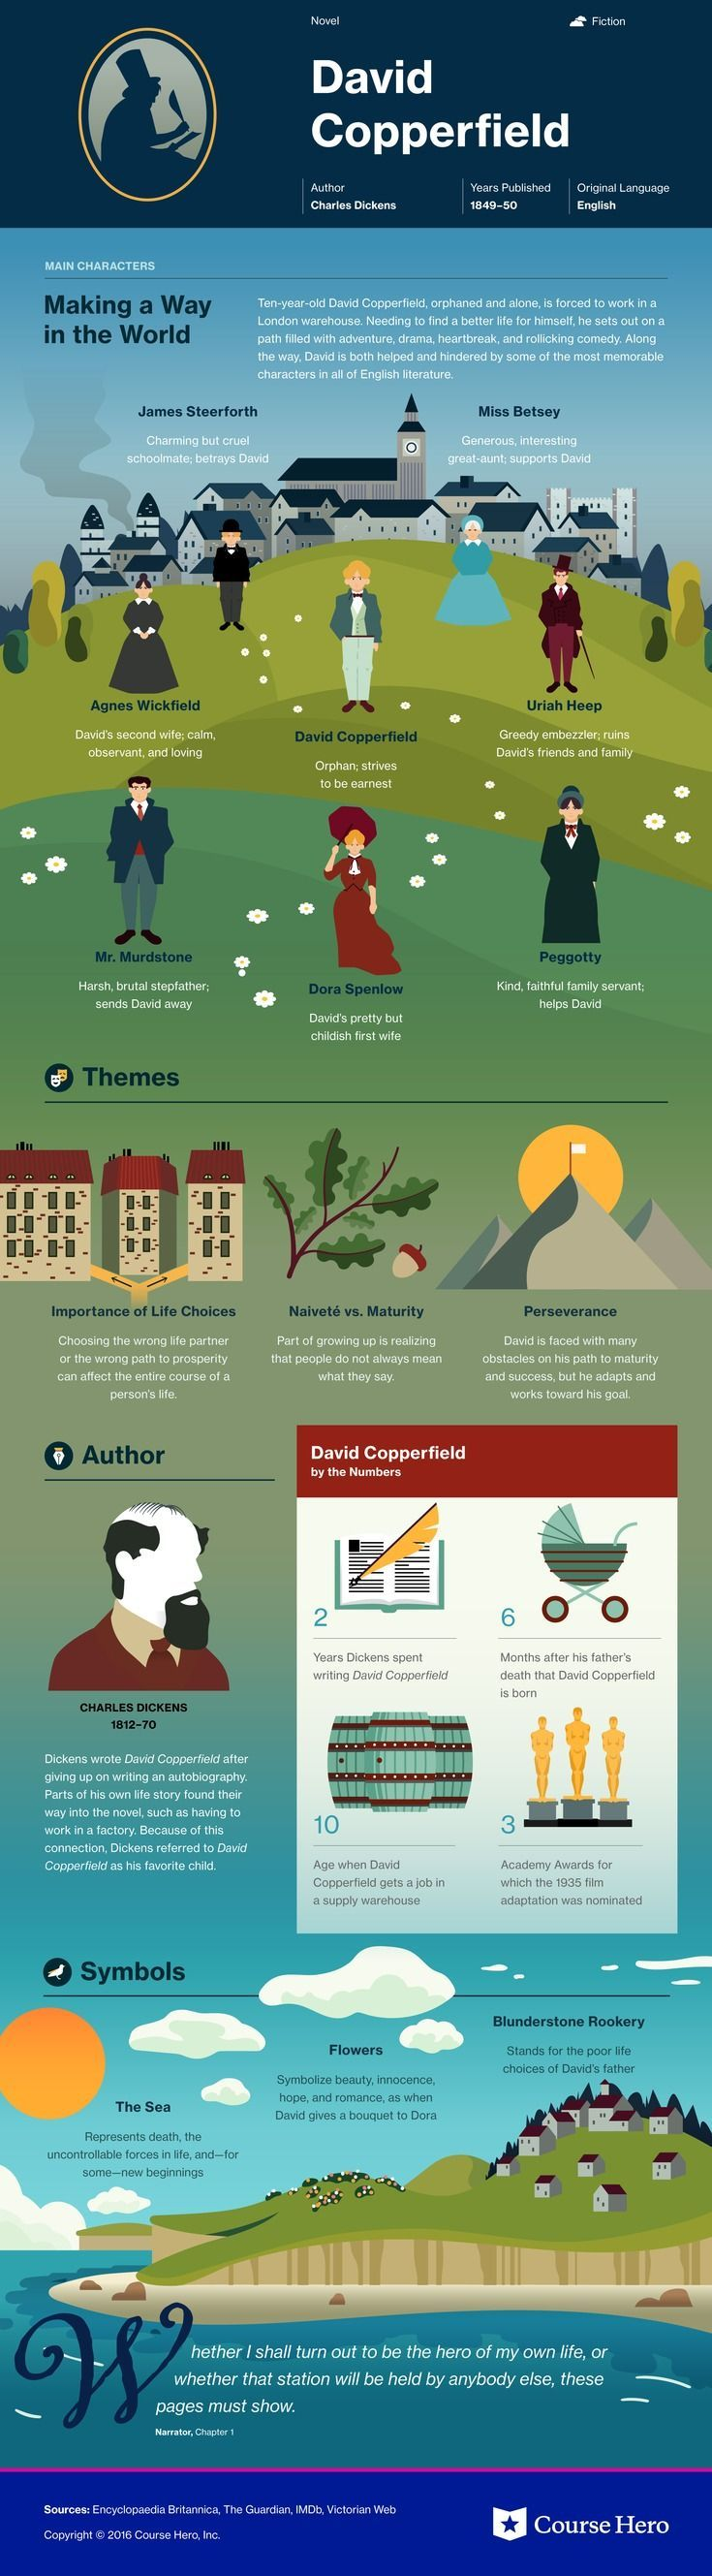 david copperfield infographic course hero literature david copperfield infographic course hero literature infographics heroes infographic and david